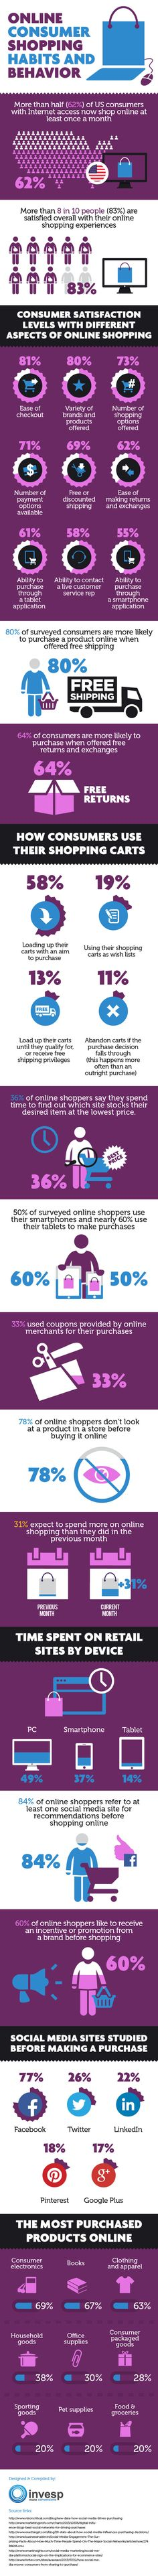 Online Consumer Shopping Habits and Behavior – Statistics and Trends